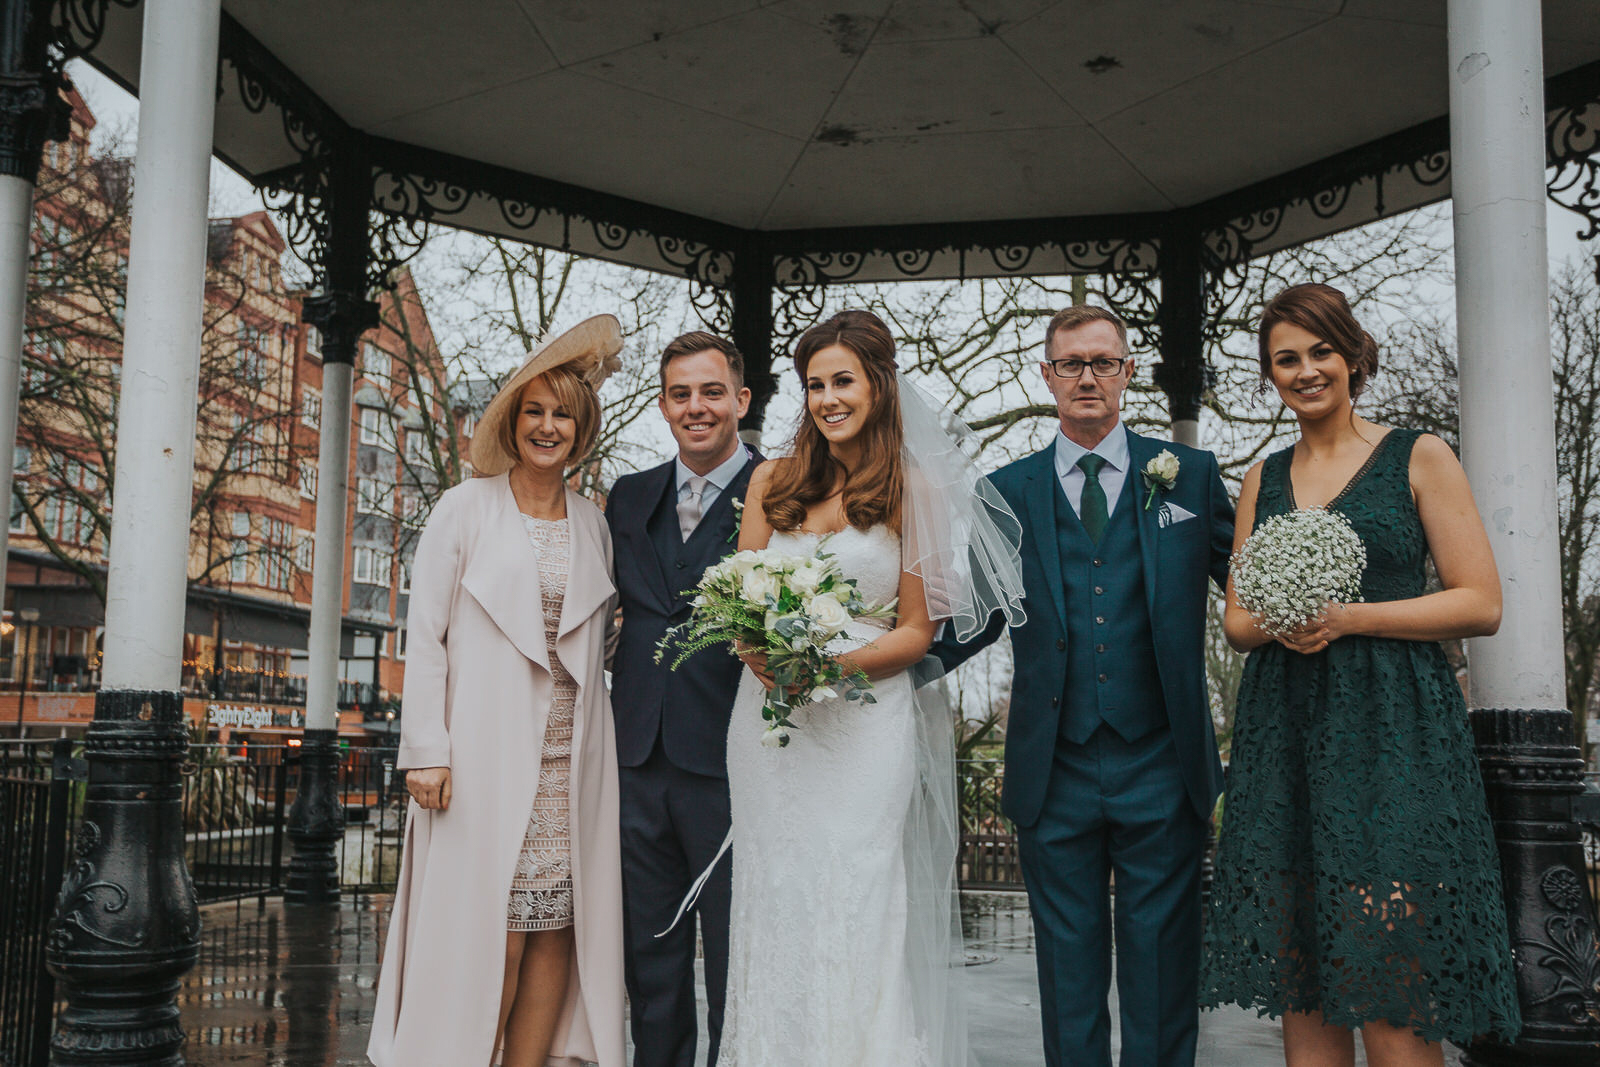 The Vincent Southport Wedding Photographer - 64.jpg